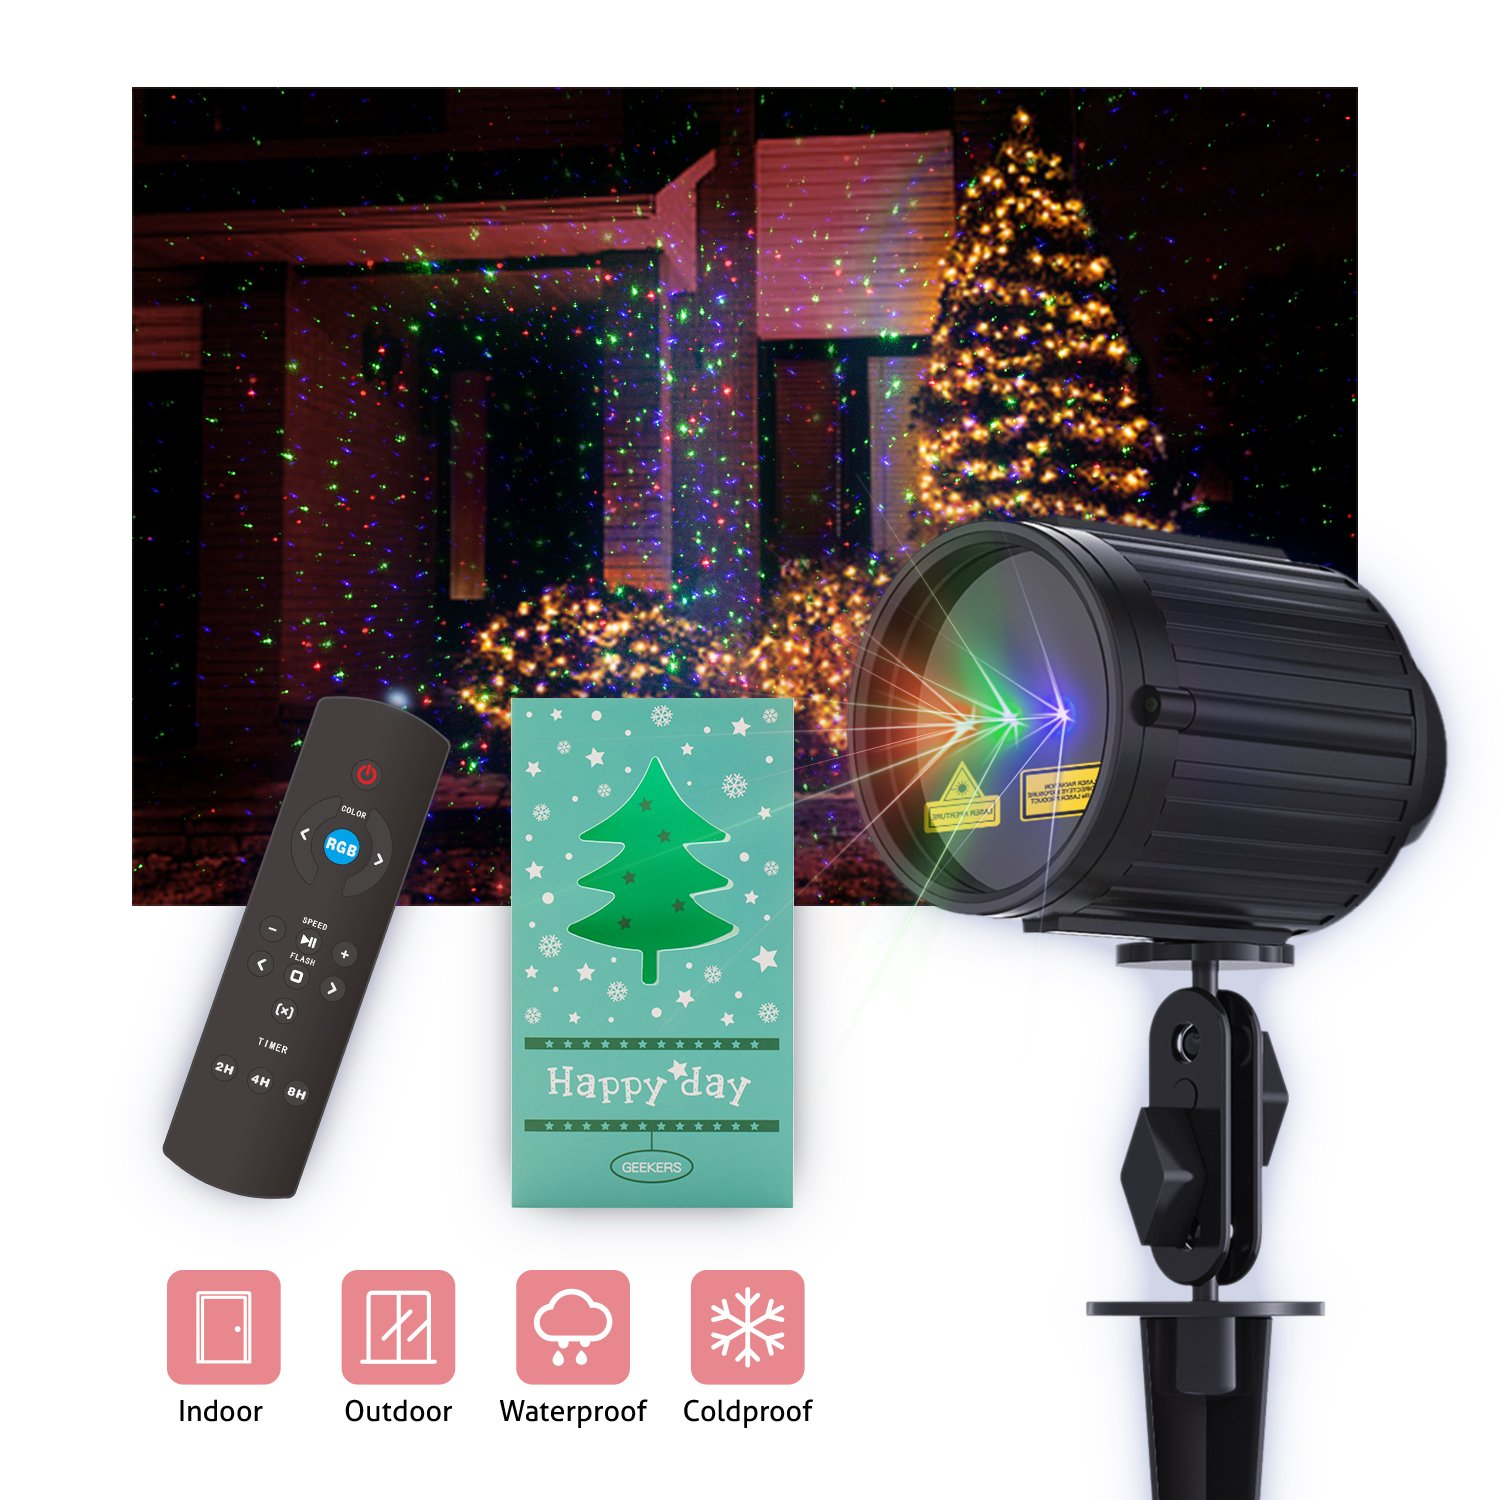 Christmas Projector Light, Laser Projector Red Green and Blue Star 3 Modes with RF Remote Control, Garden Lamp Weatherproof Xams Star Laser Show Lighting for Halloween, Party, Holiday Decoration by Fiery Fouth